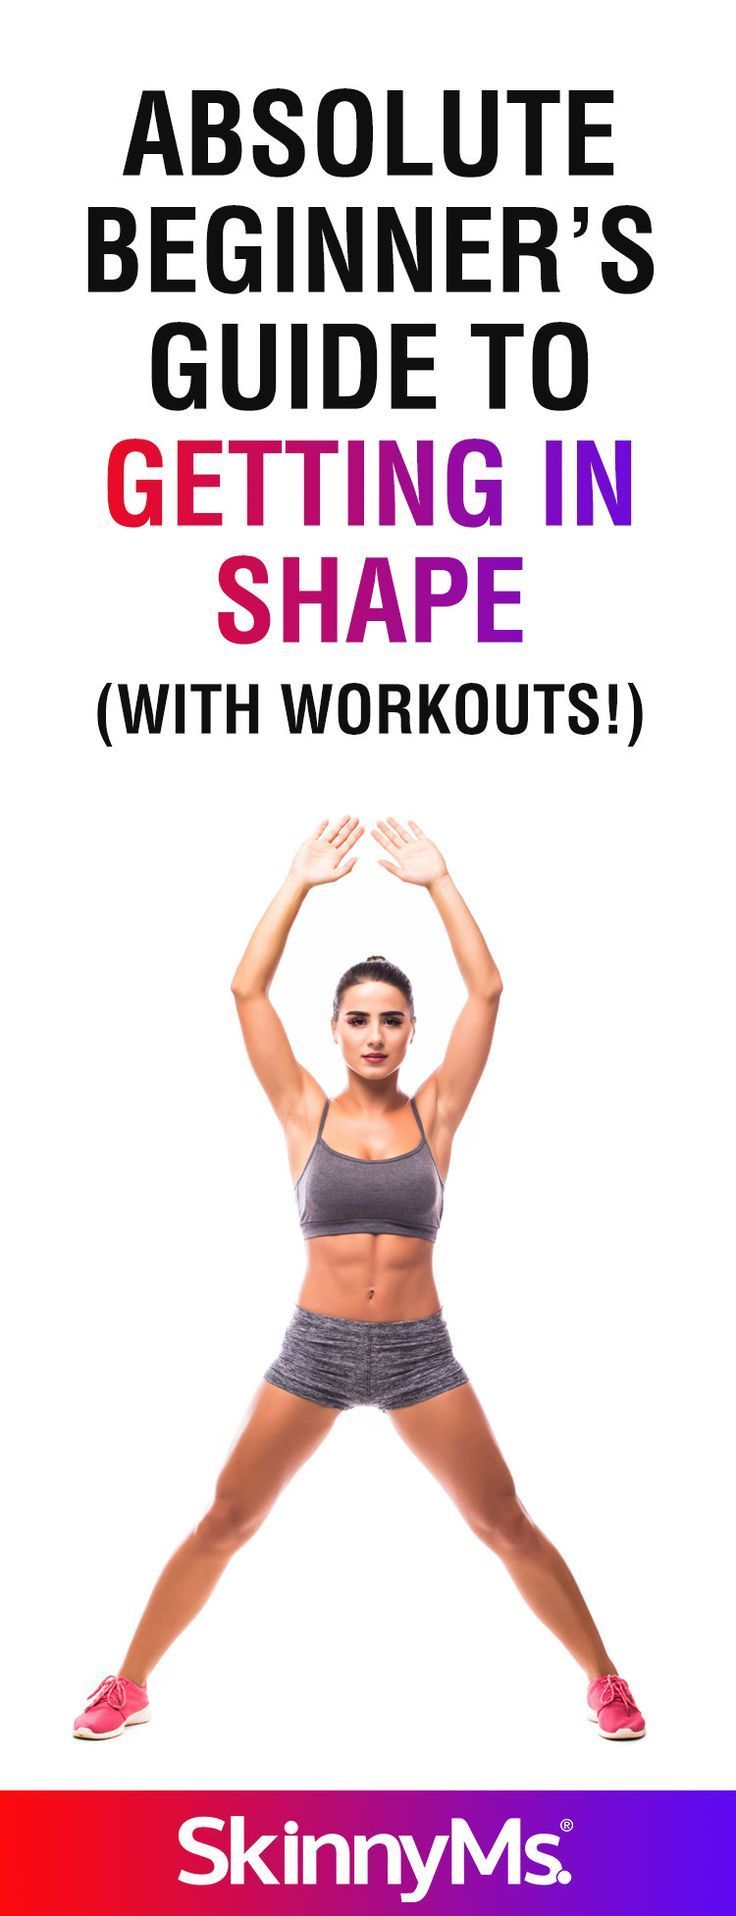 Absolute Beginner's Guide to Getting in Shape Absolute Beginner's Guide to Getting in Shape | beginner workouts | fitness gu...